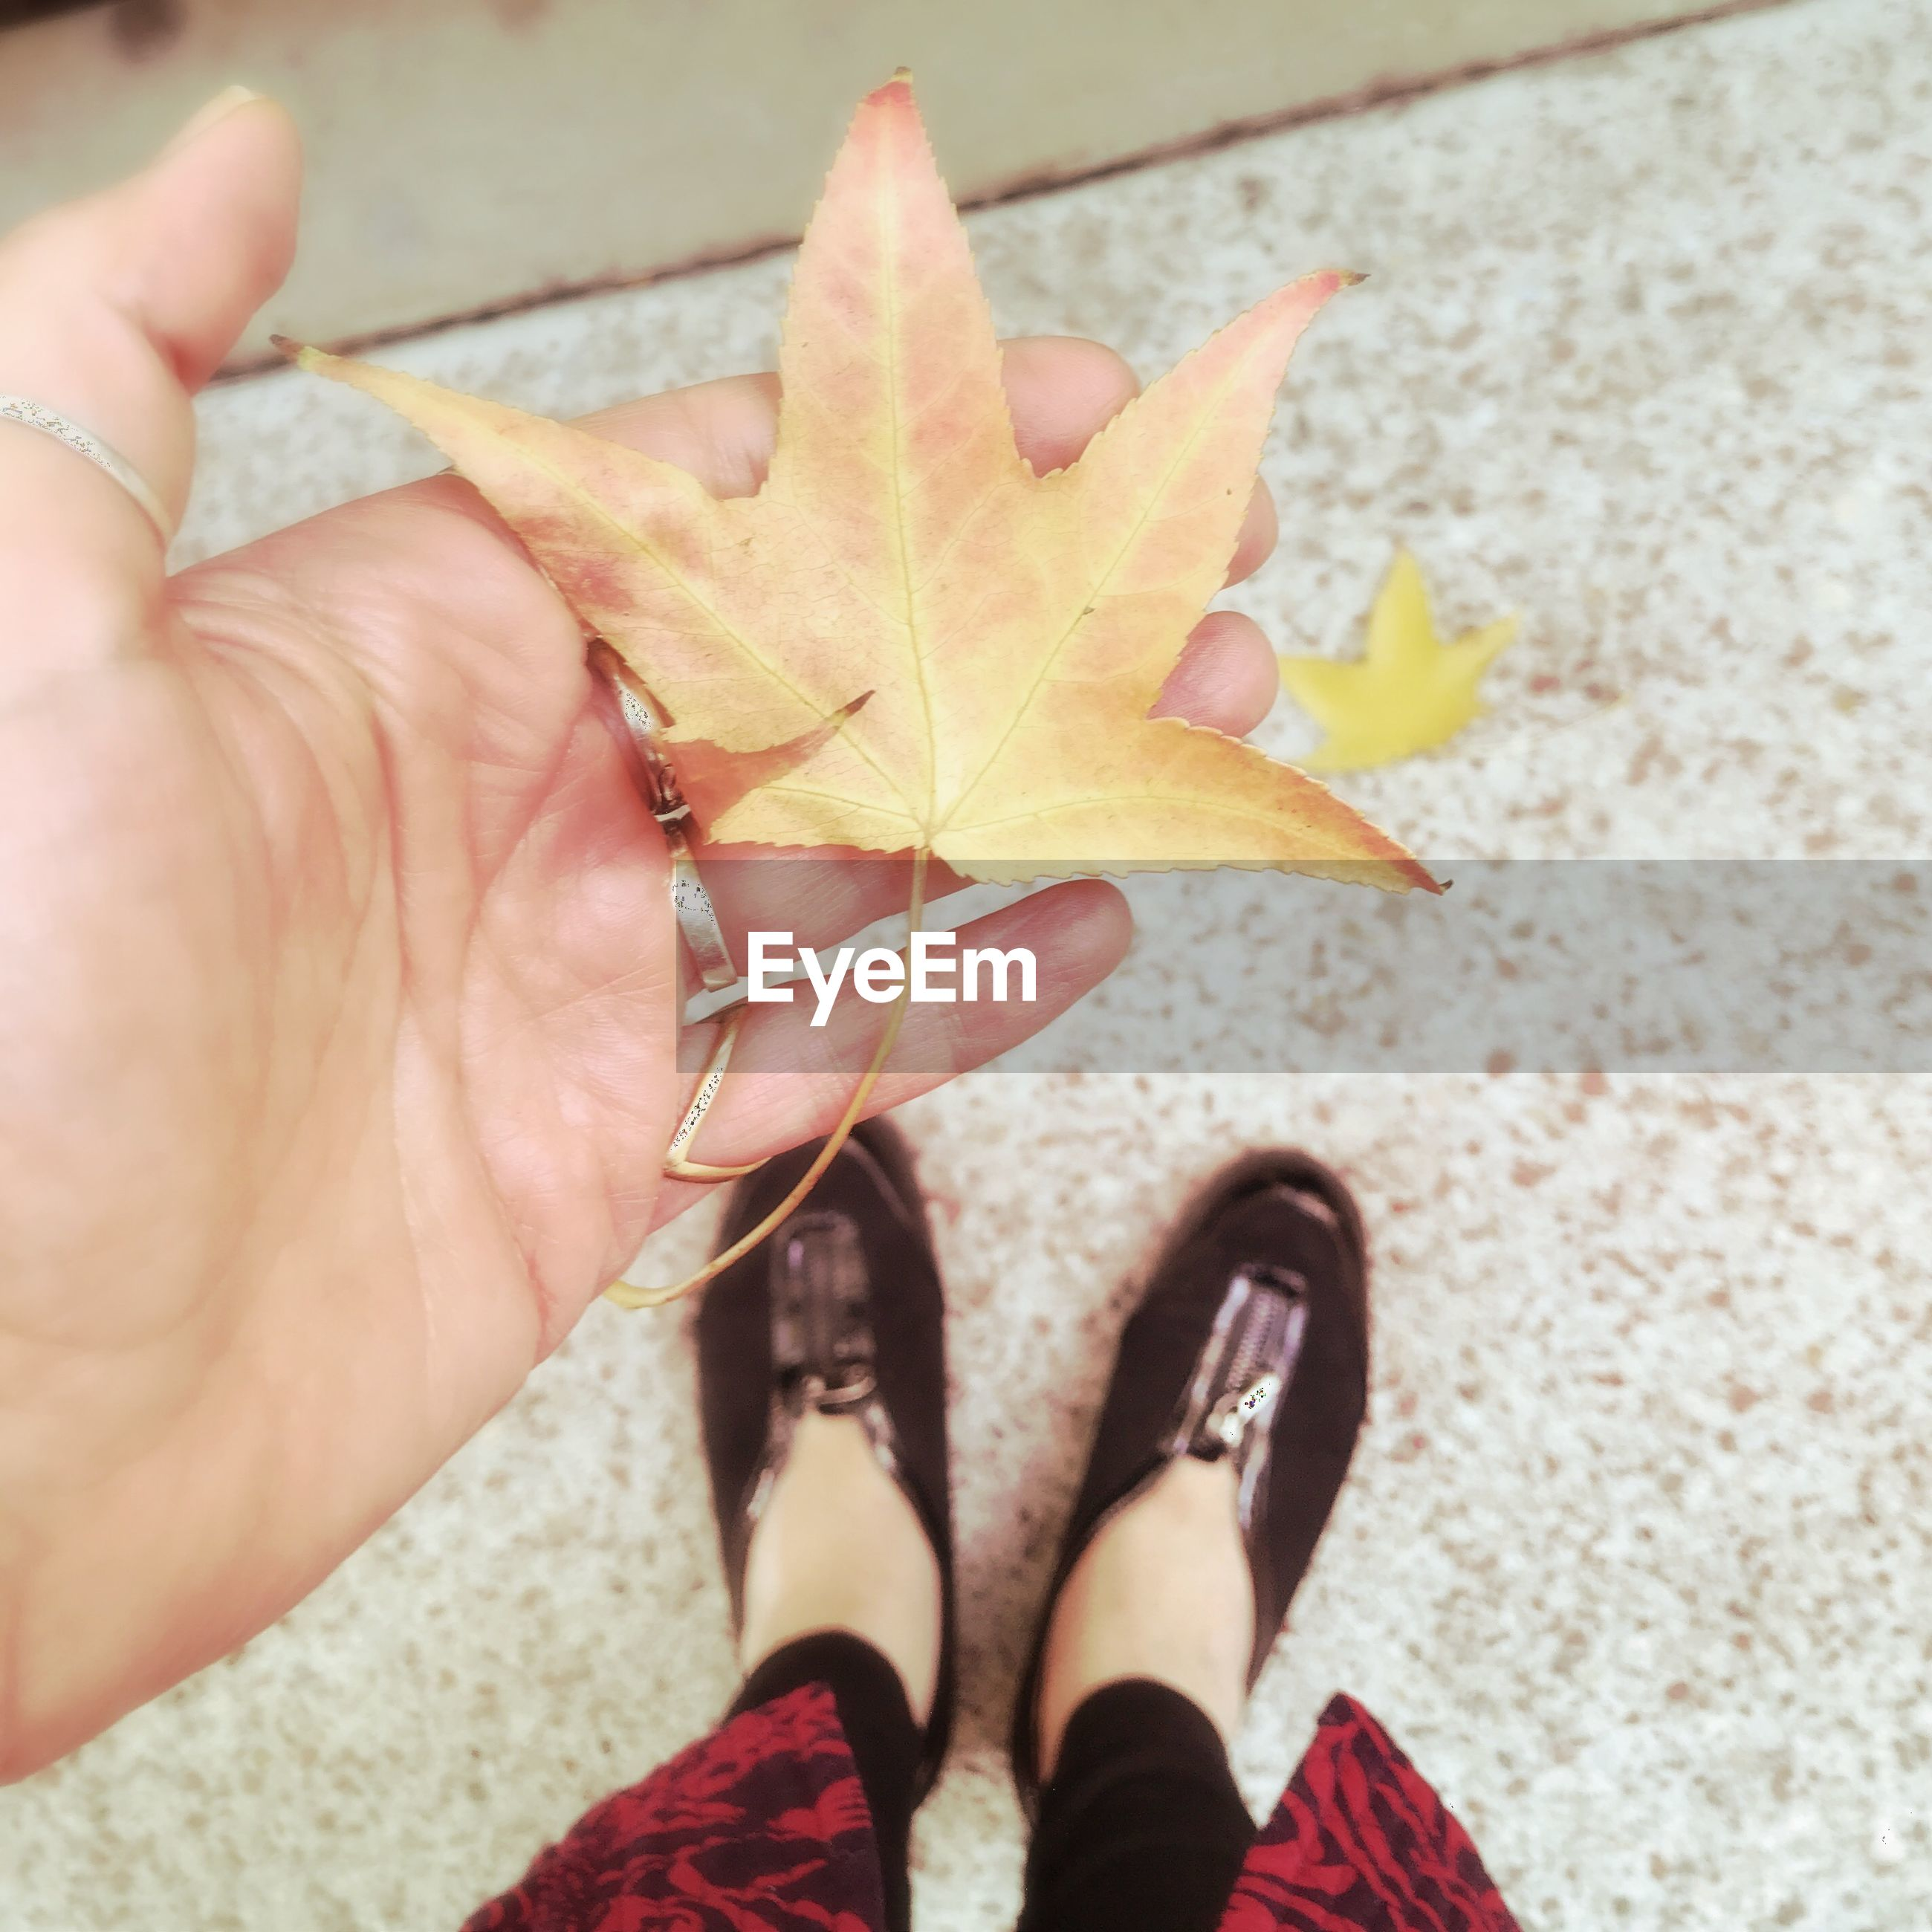 human body part, body part, real people, personal perspective, human hand, low section, one person, hand, human leg, plant part, leaf, day, lifestyles, close-up, autumn, finger, leisure activity, human finger, high angle view, change, outdoors, maple leaf, human foot, starfish, human limb